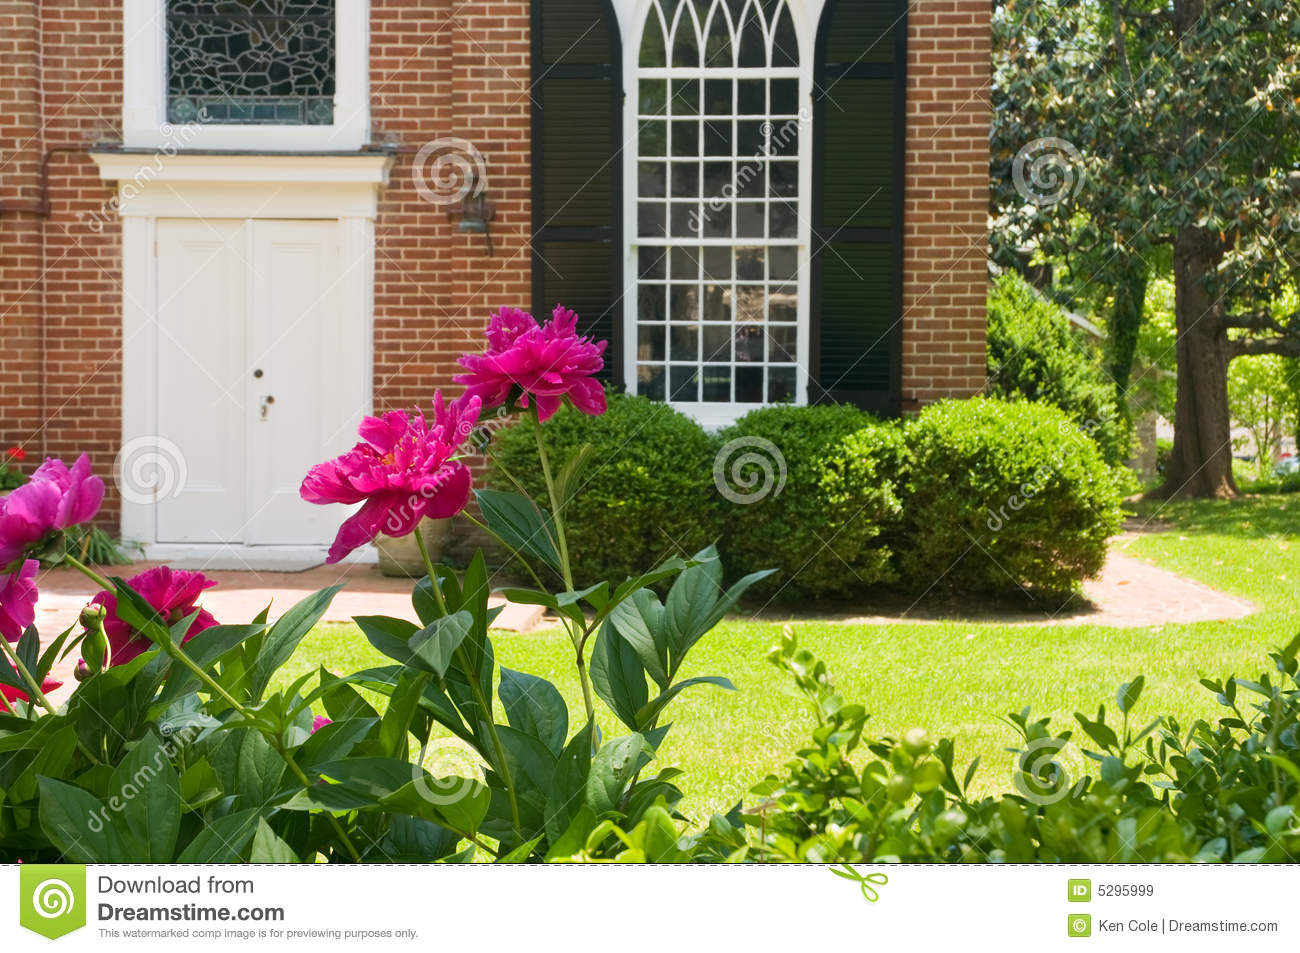 Flowers in front of church